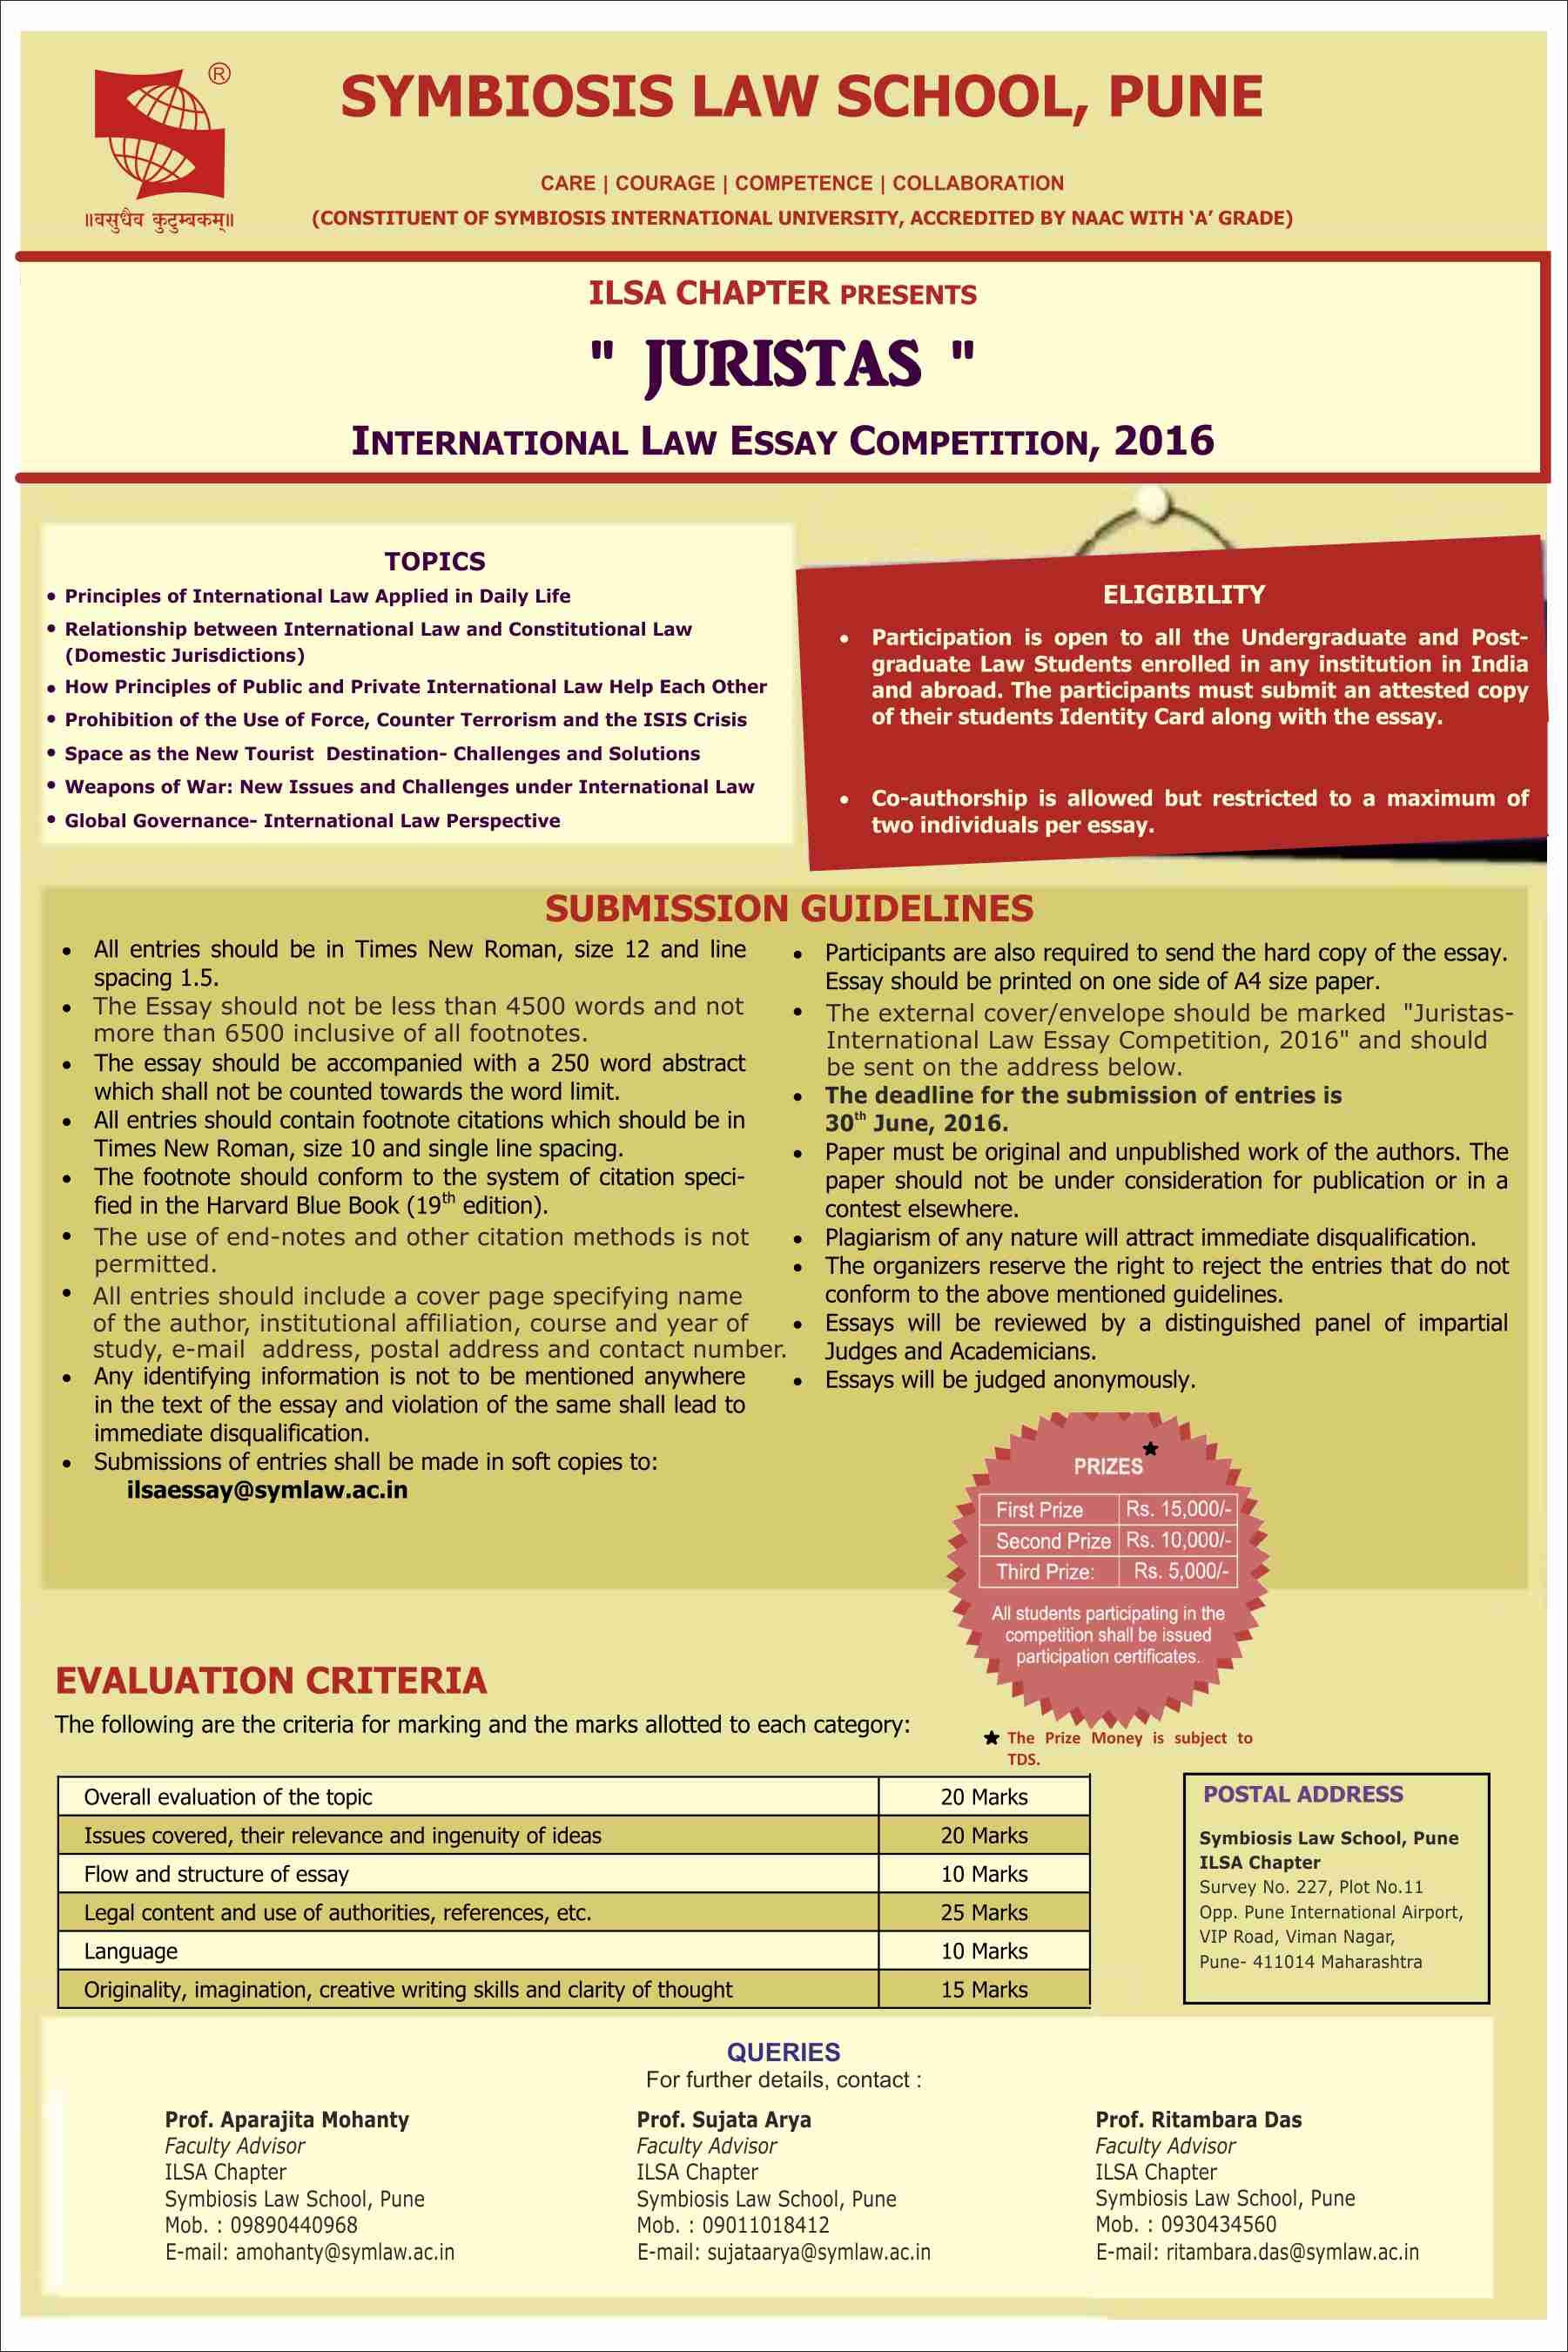 SLS Pune's JURISTAS International Law Essay Competition 2016